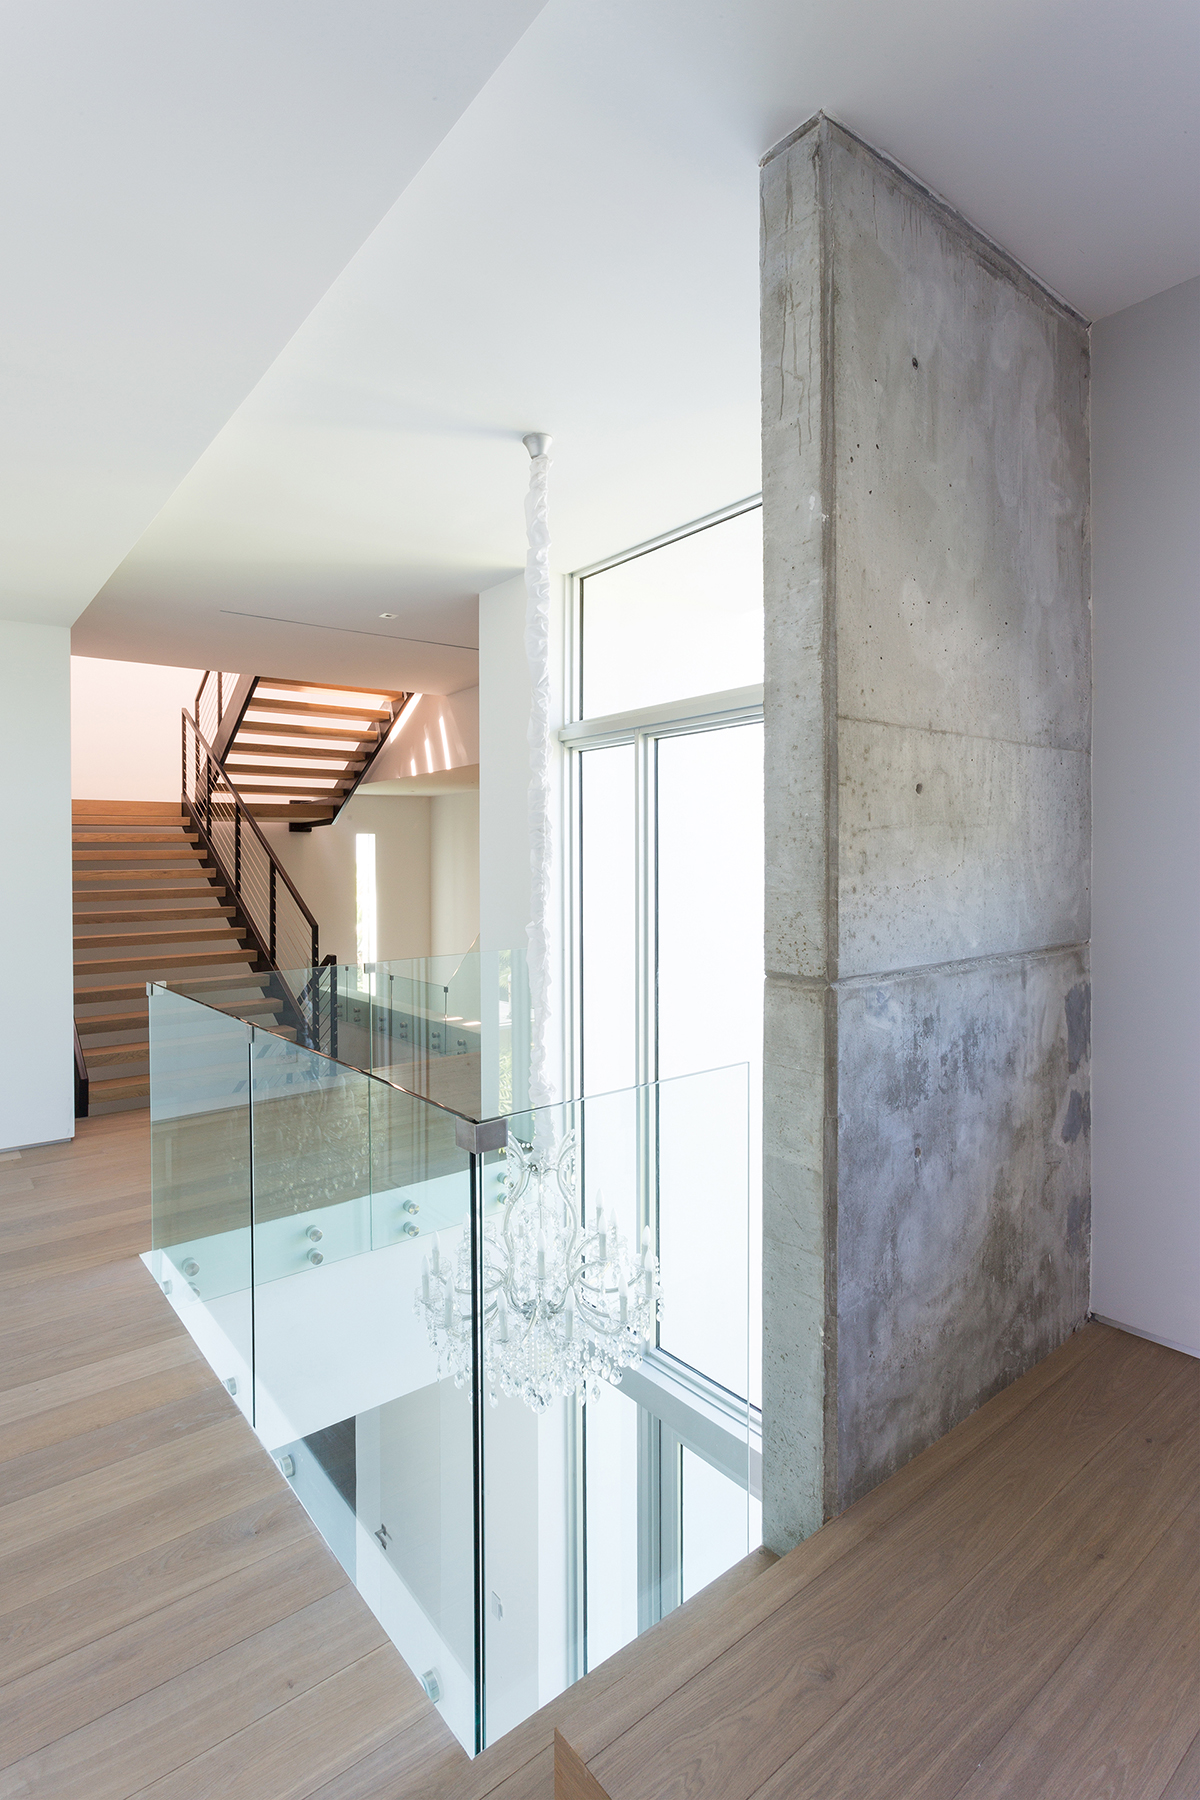 Overlooking the wooden floor is a glass fence